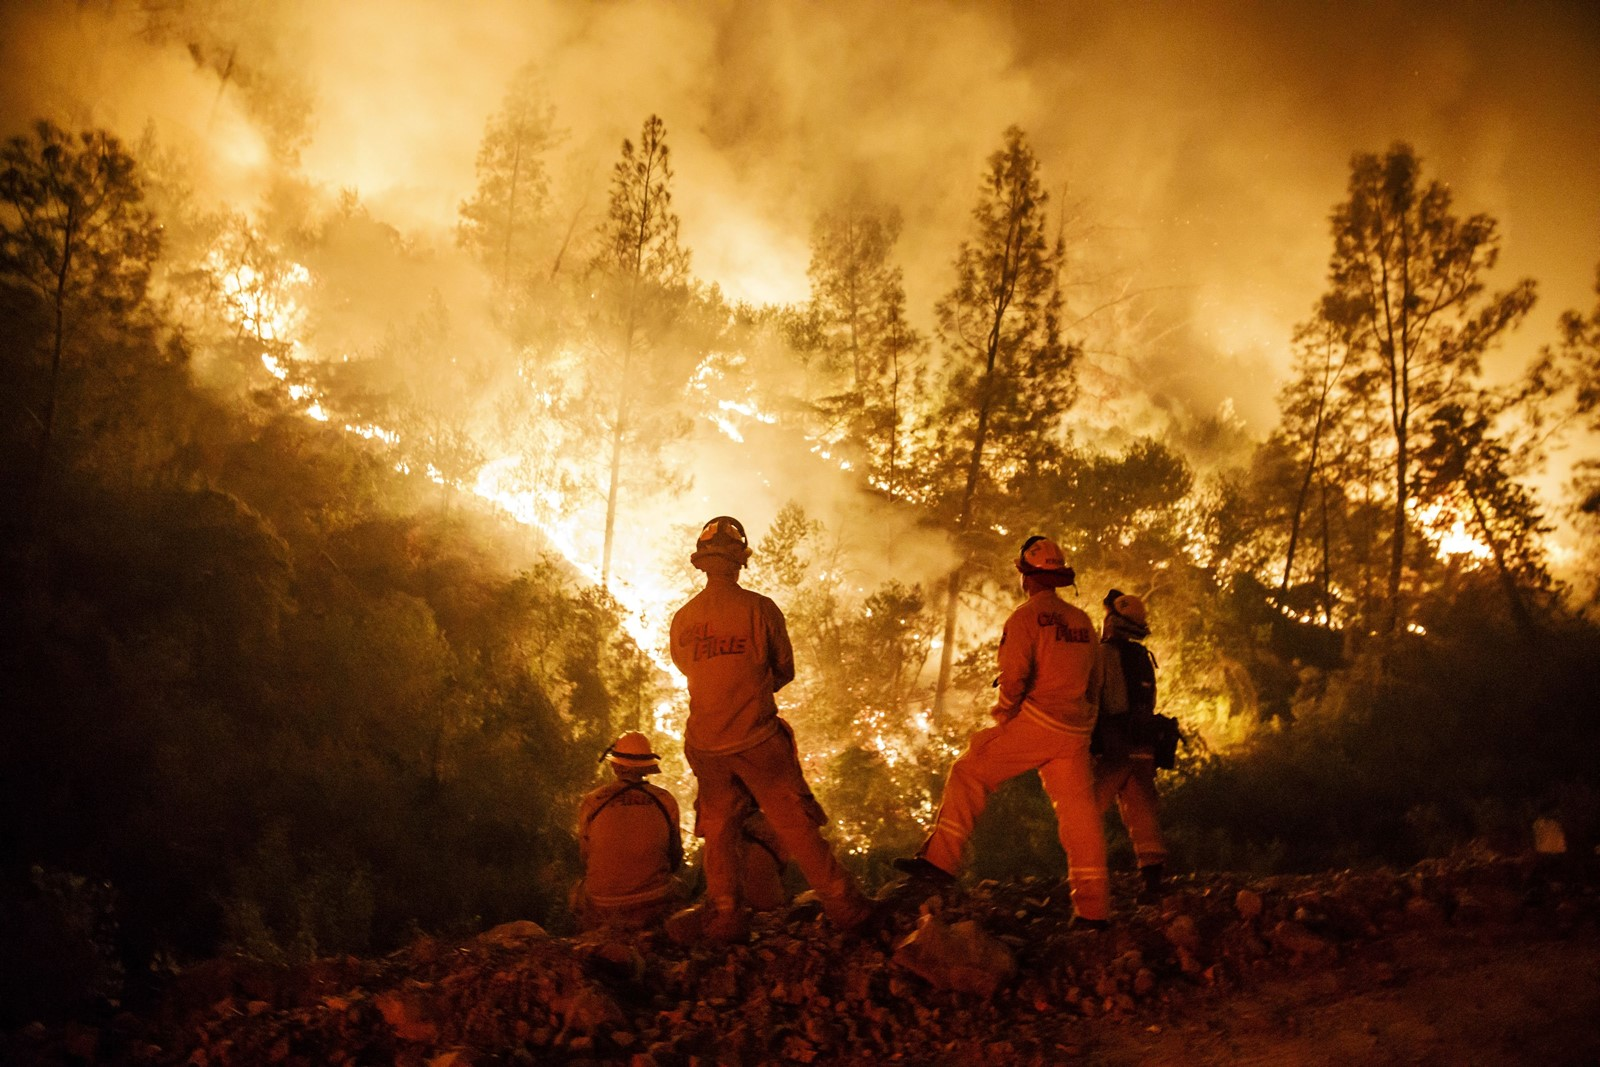 Firefighters monitor a burn operation near Lodoga in the battle against the Mendocino Complex fire. Its remote location, in rugged, forested terrain where no fire engine can reach, is a big reason it rapidly grew into the largest in California history. — Photograph: Marcus Yam/Los Angeles Times.